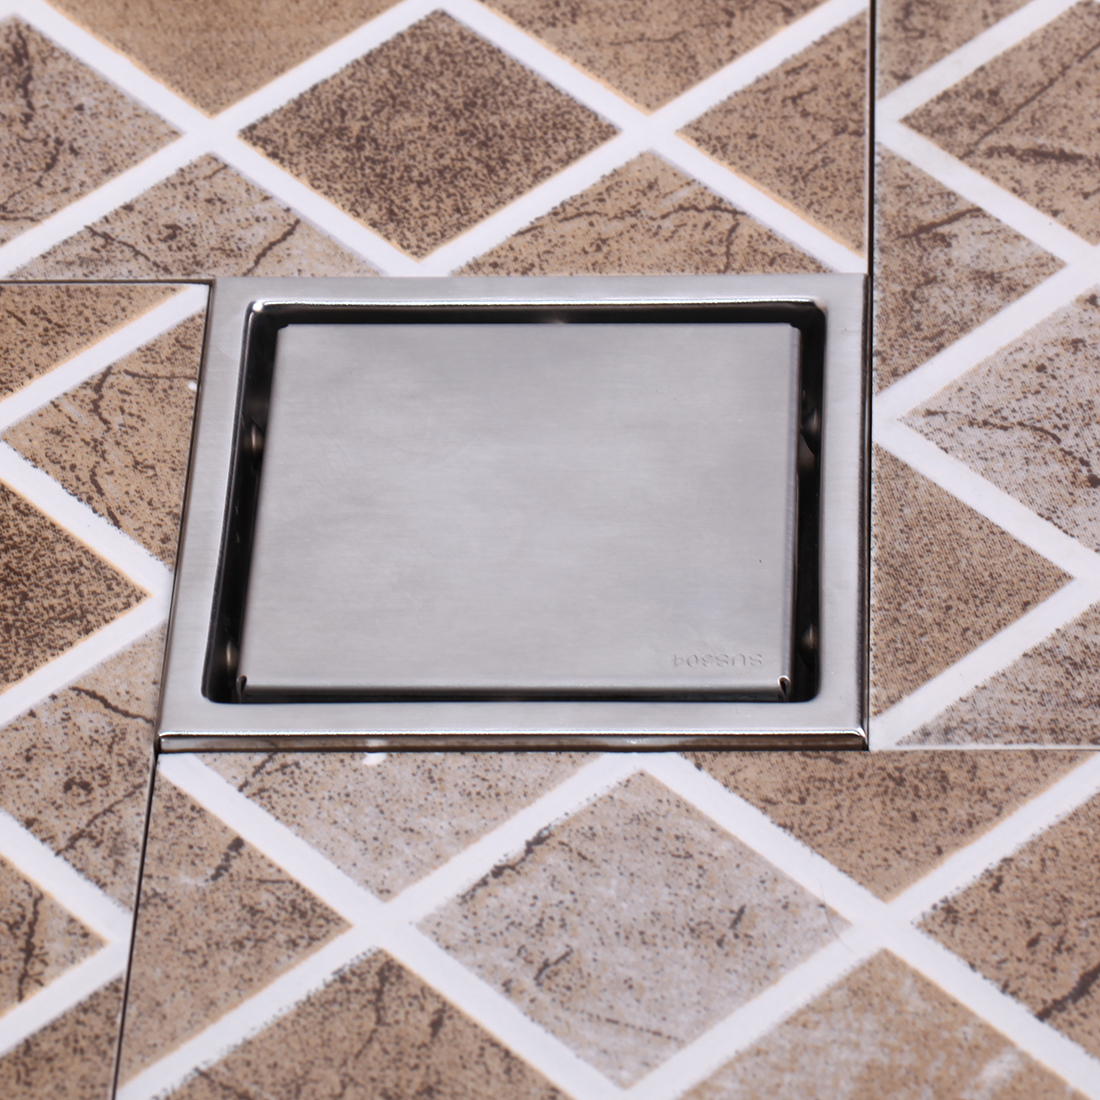 High Quality Steel Bathroom Shower Triangle Tile Insert Floor Square Floor Drain